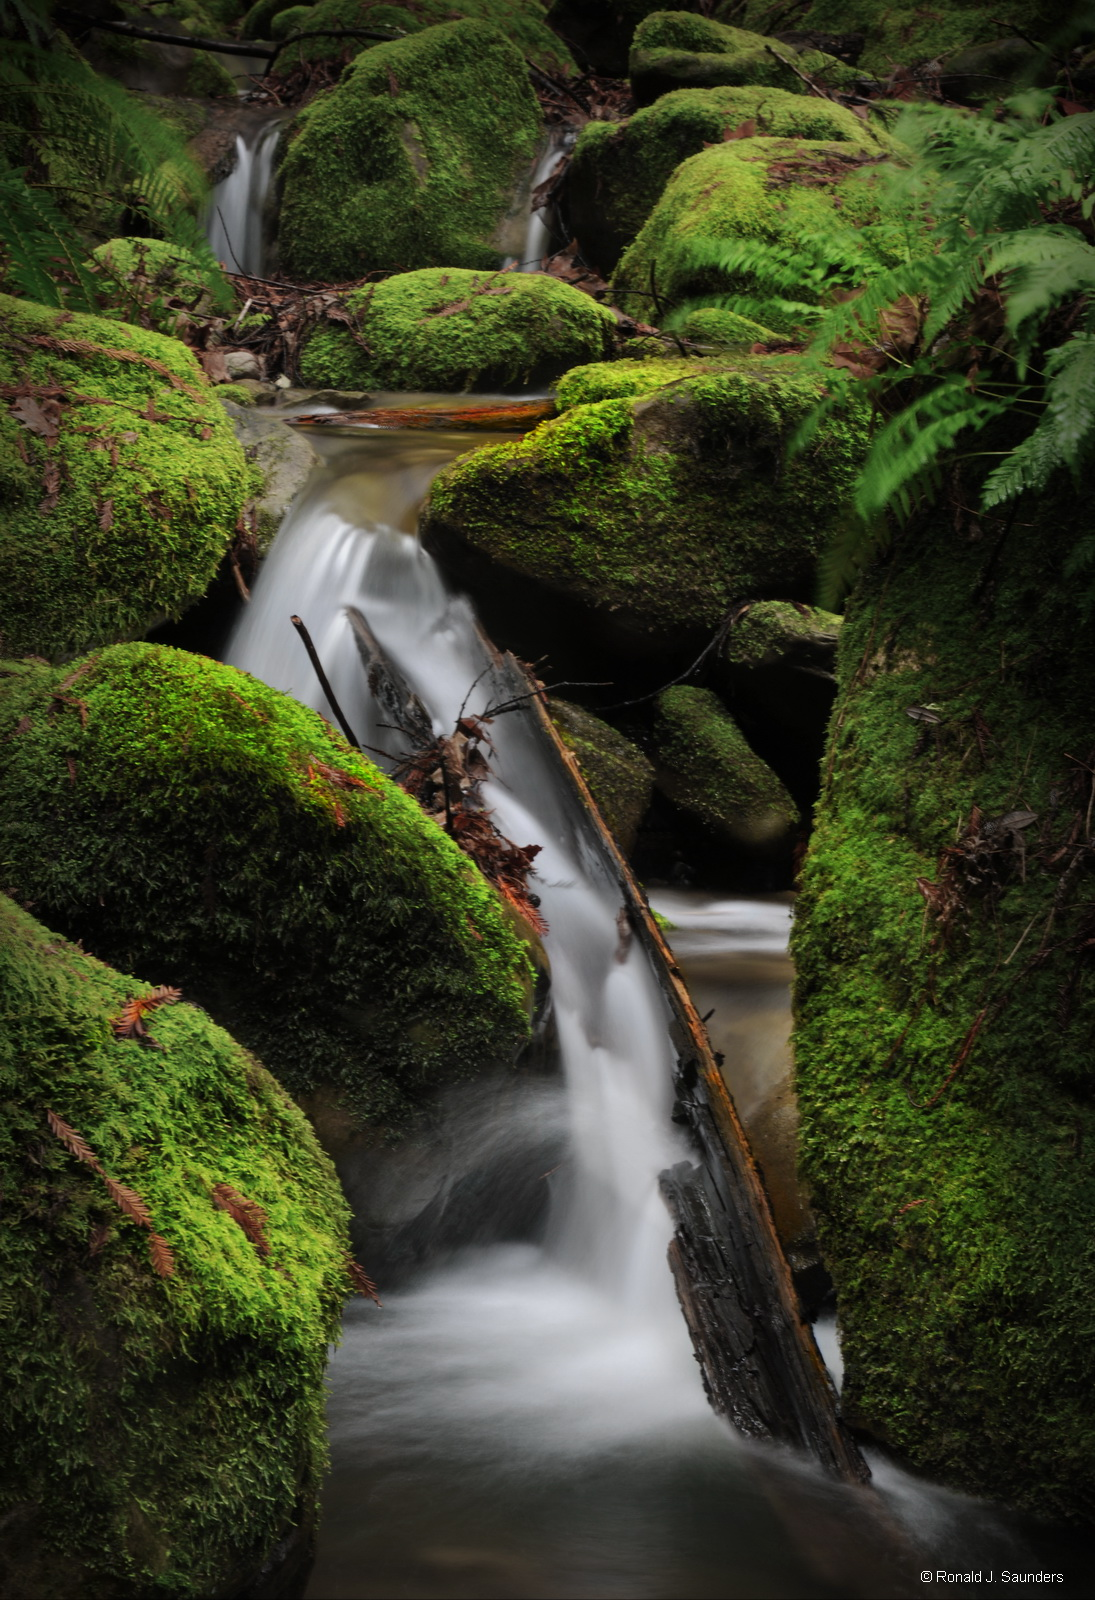 redwoods, california, falls, water, moss, rocks, stream, ferns, ron, ron saunders, ronald, ronald j saunders, prints, photo